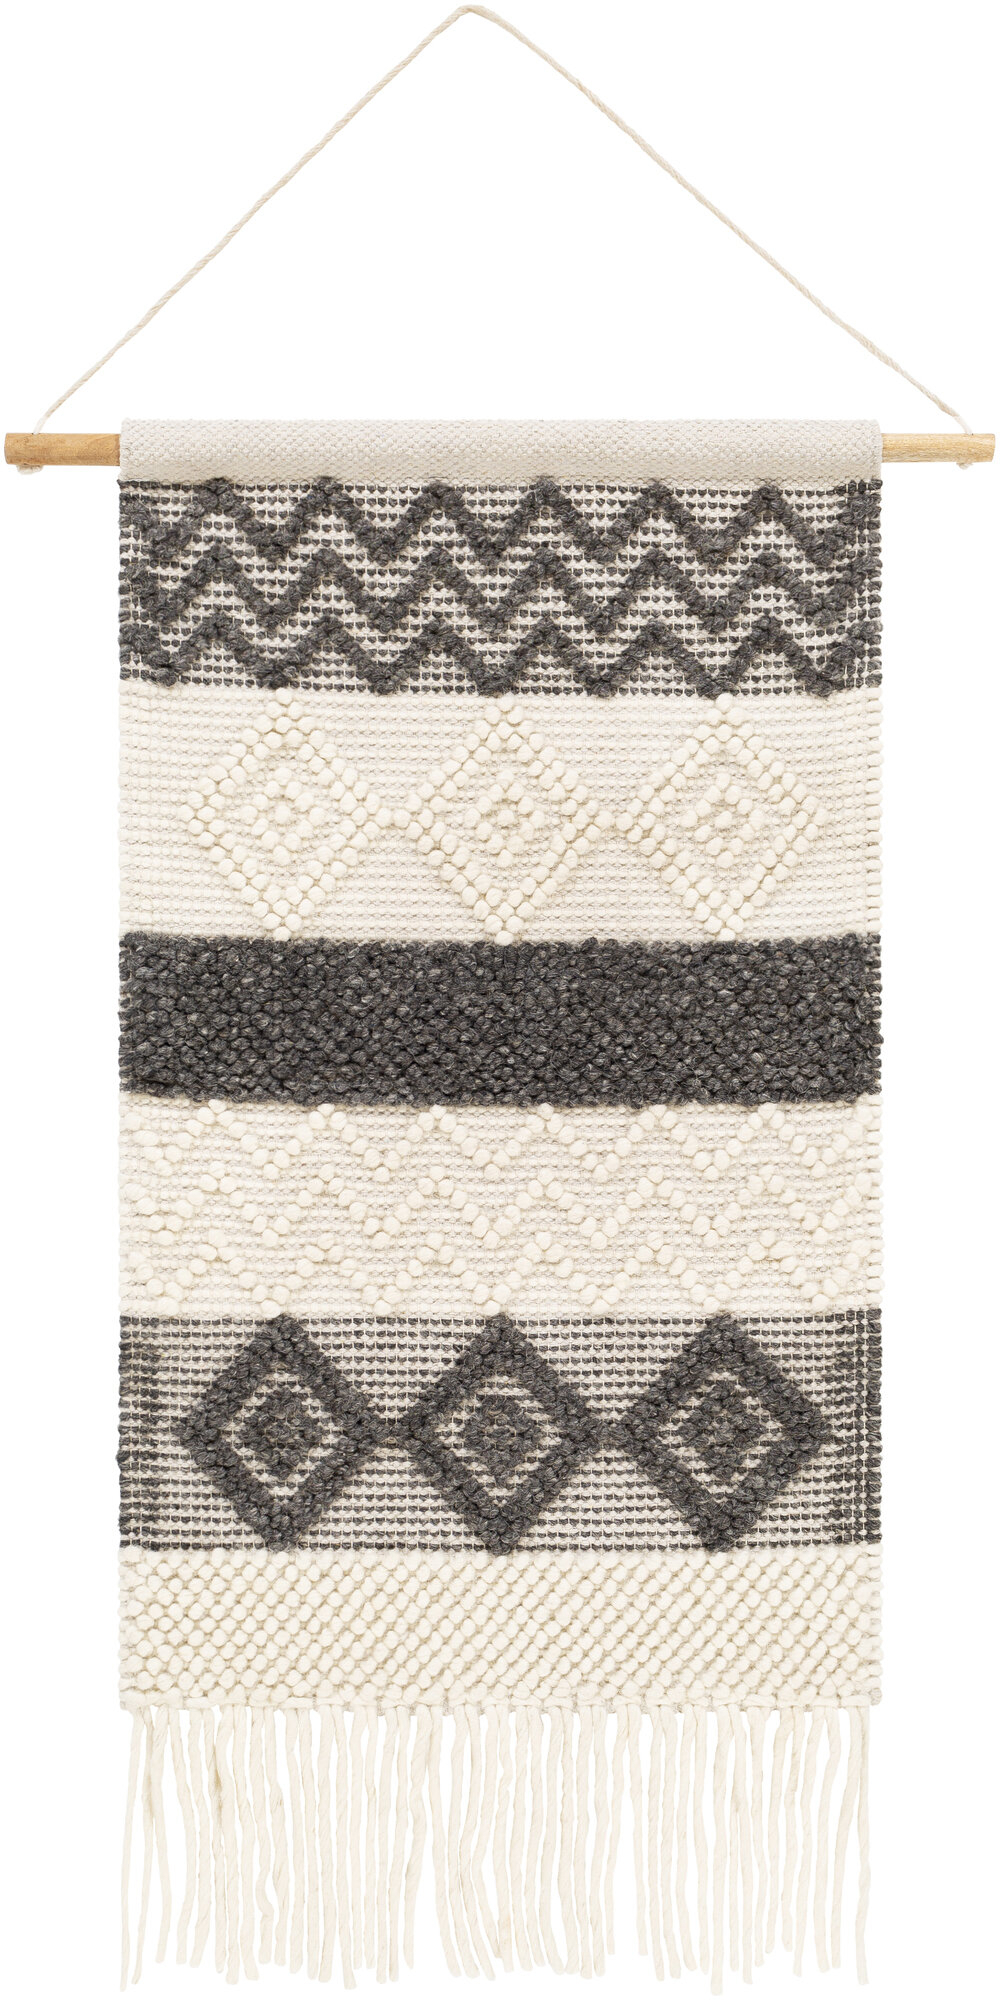 Clancy Wool And Cotton Wall Hanging With Hanging Accessories Included Within Most Popular Blended Fabric Clancy Wool And Cotton Wall Hangings With Hanging Accessories Included (View 2 of 20)